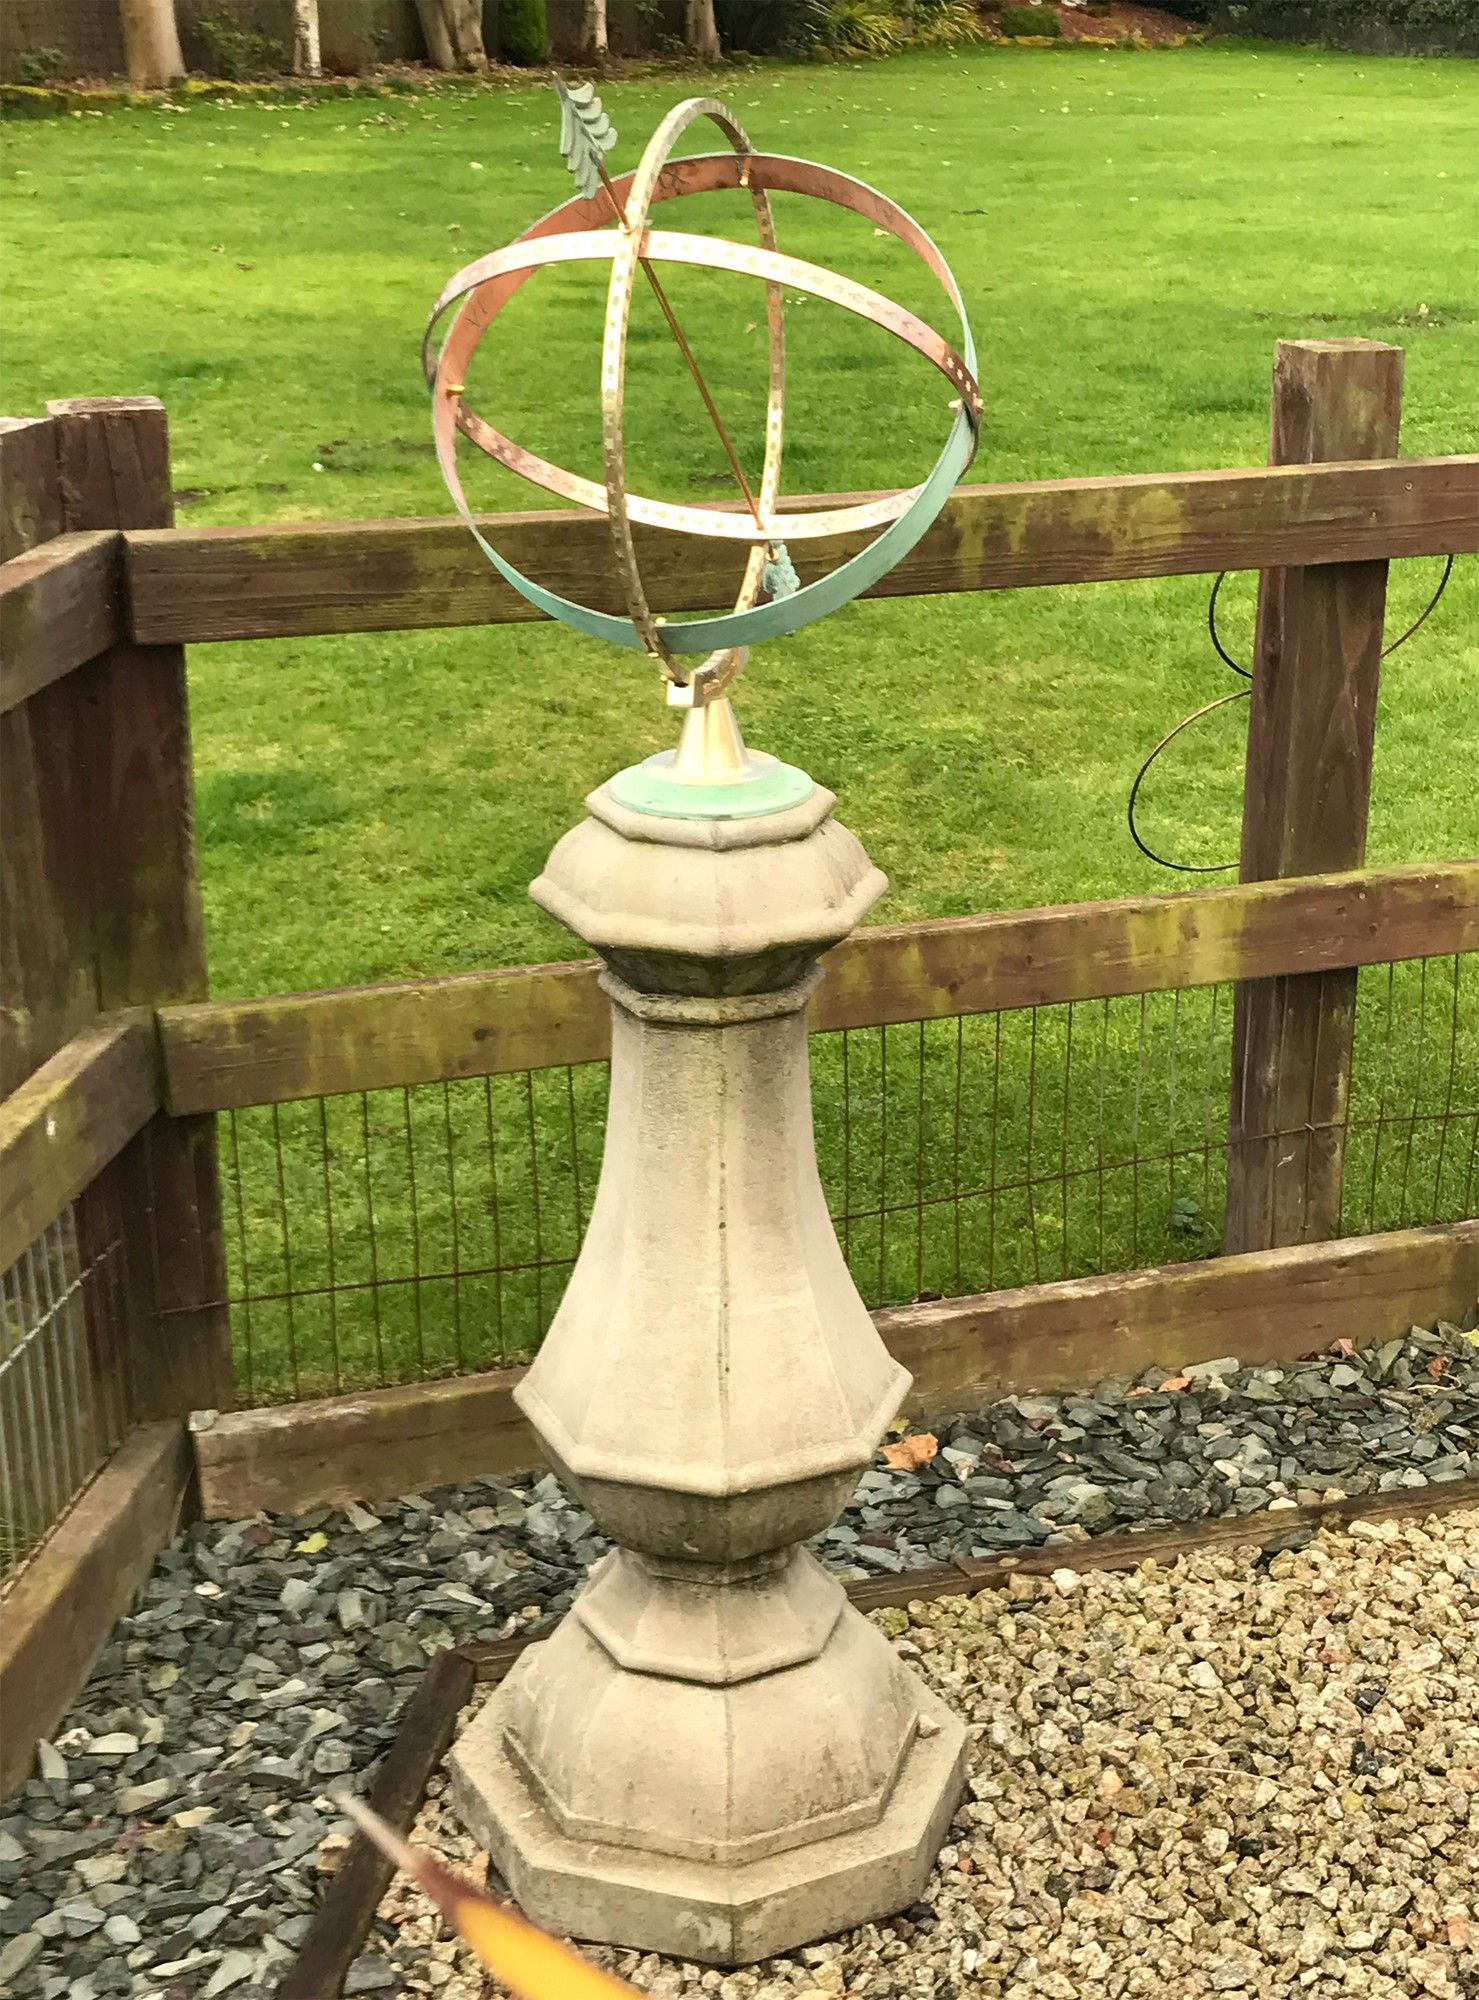 Sundial garden ornament - View The Large Marino Armillary Stone Sun Dial Garden Sundial Or See Our Full Range Of Exquisite Unique To Statues Sculptures Online